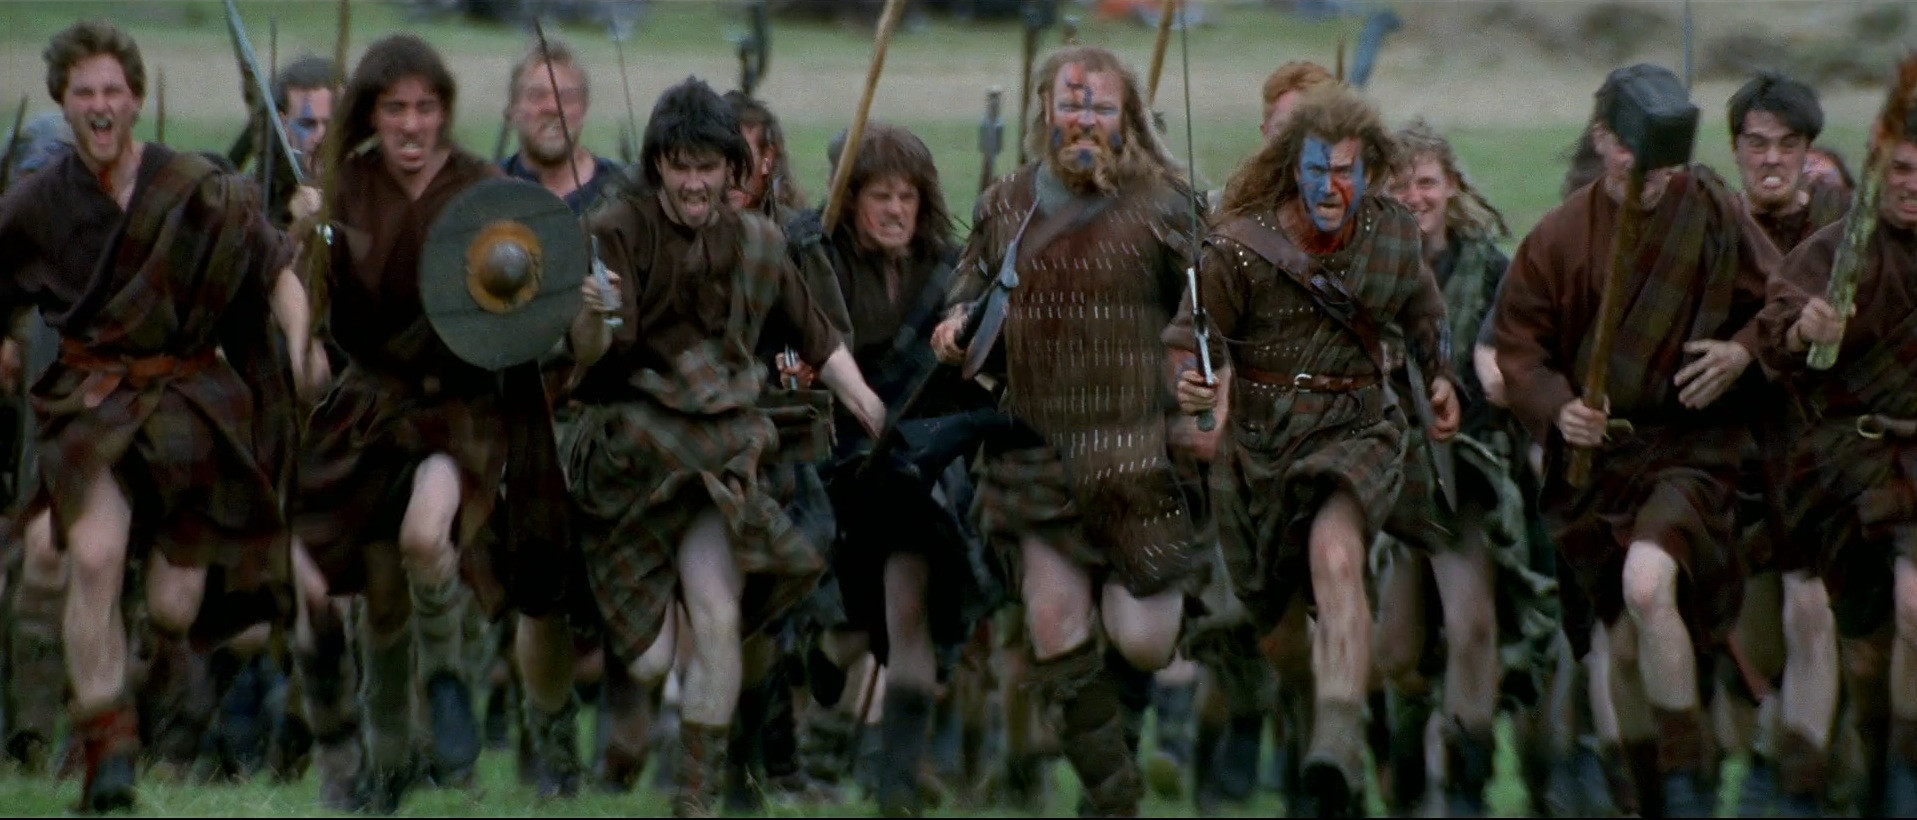 Braveheart-battle.jpg